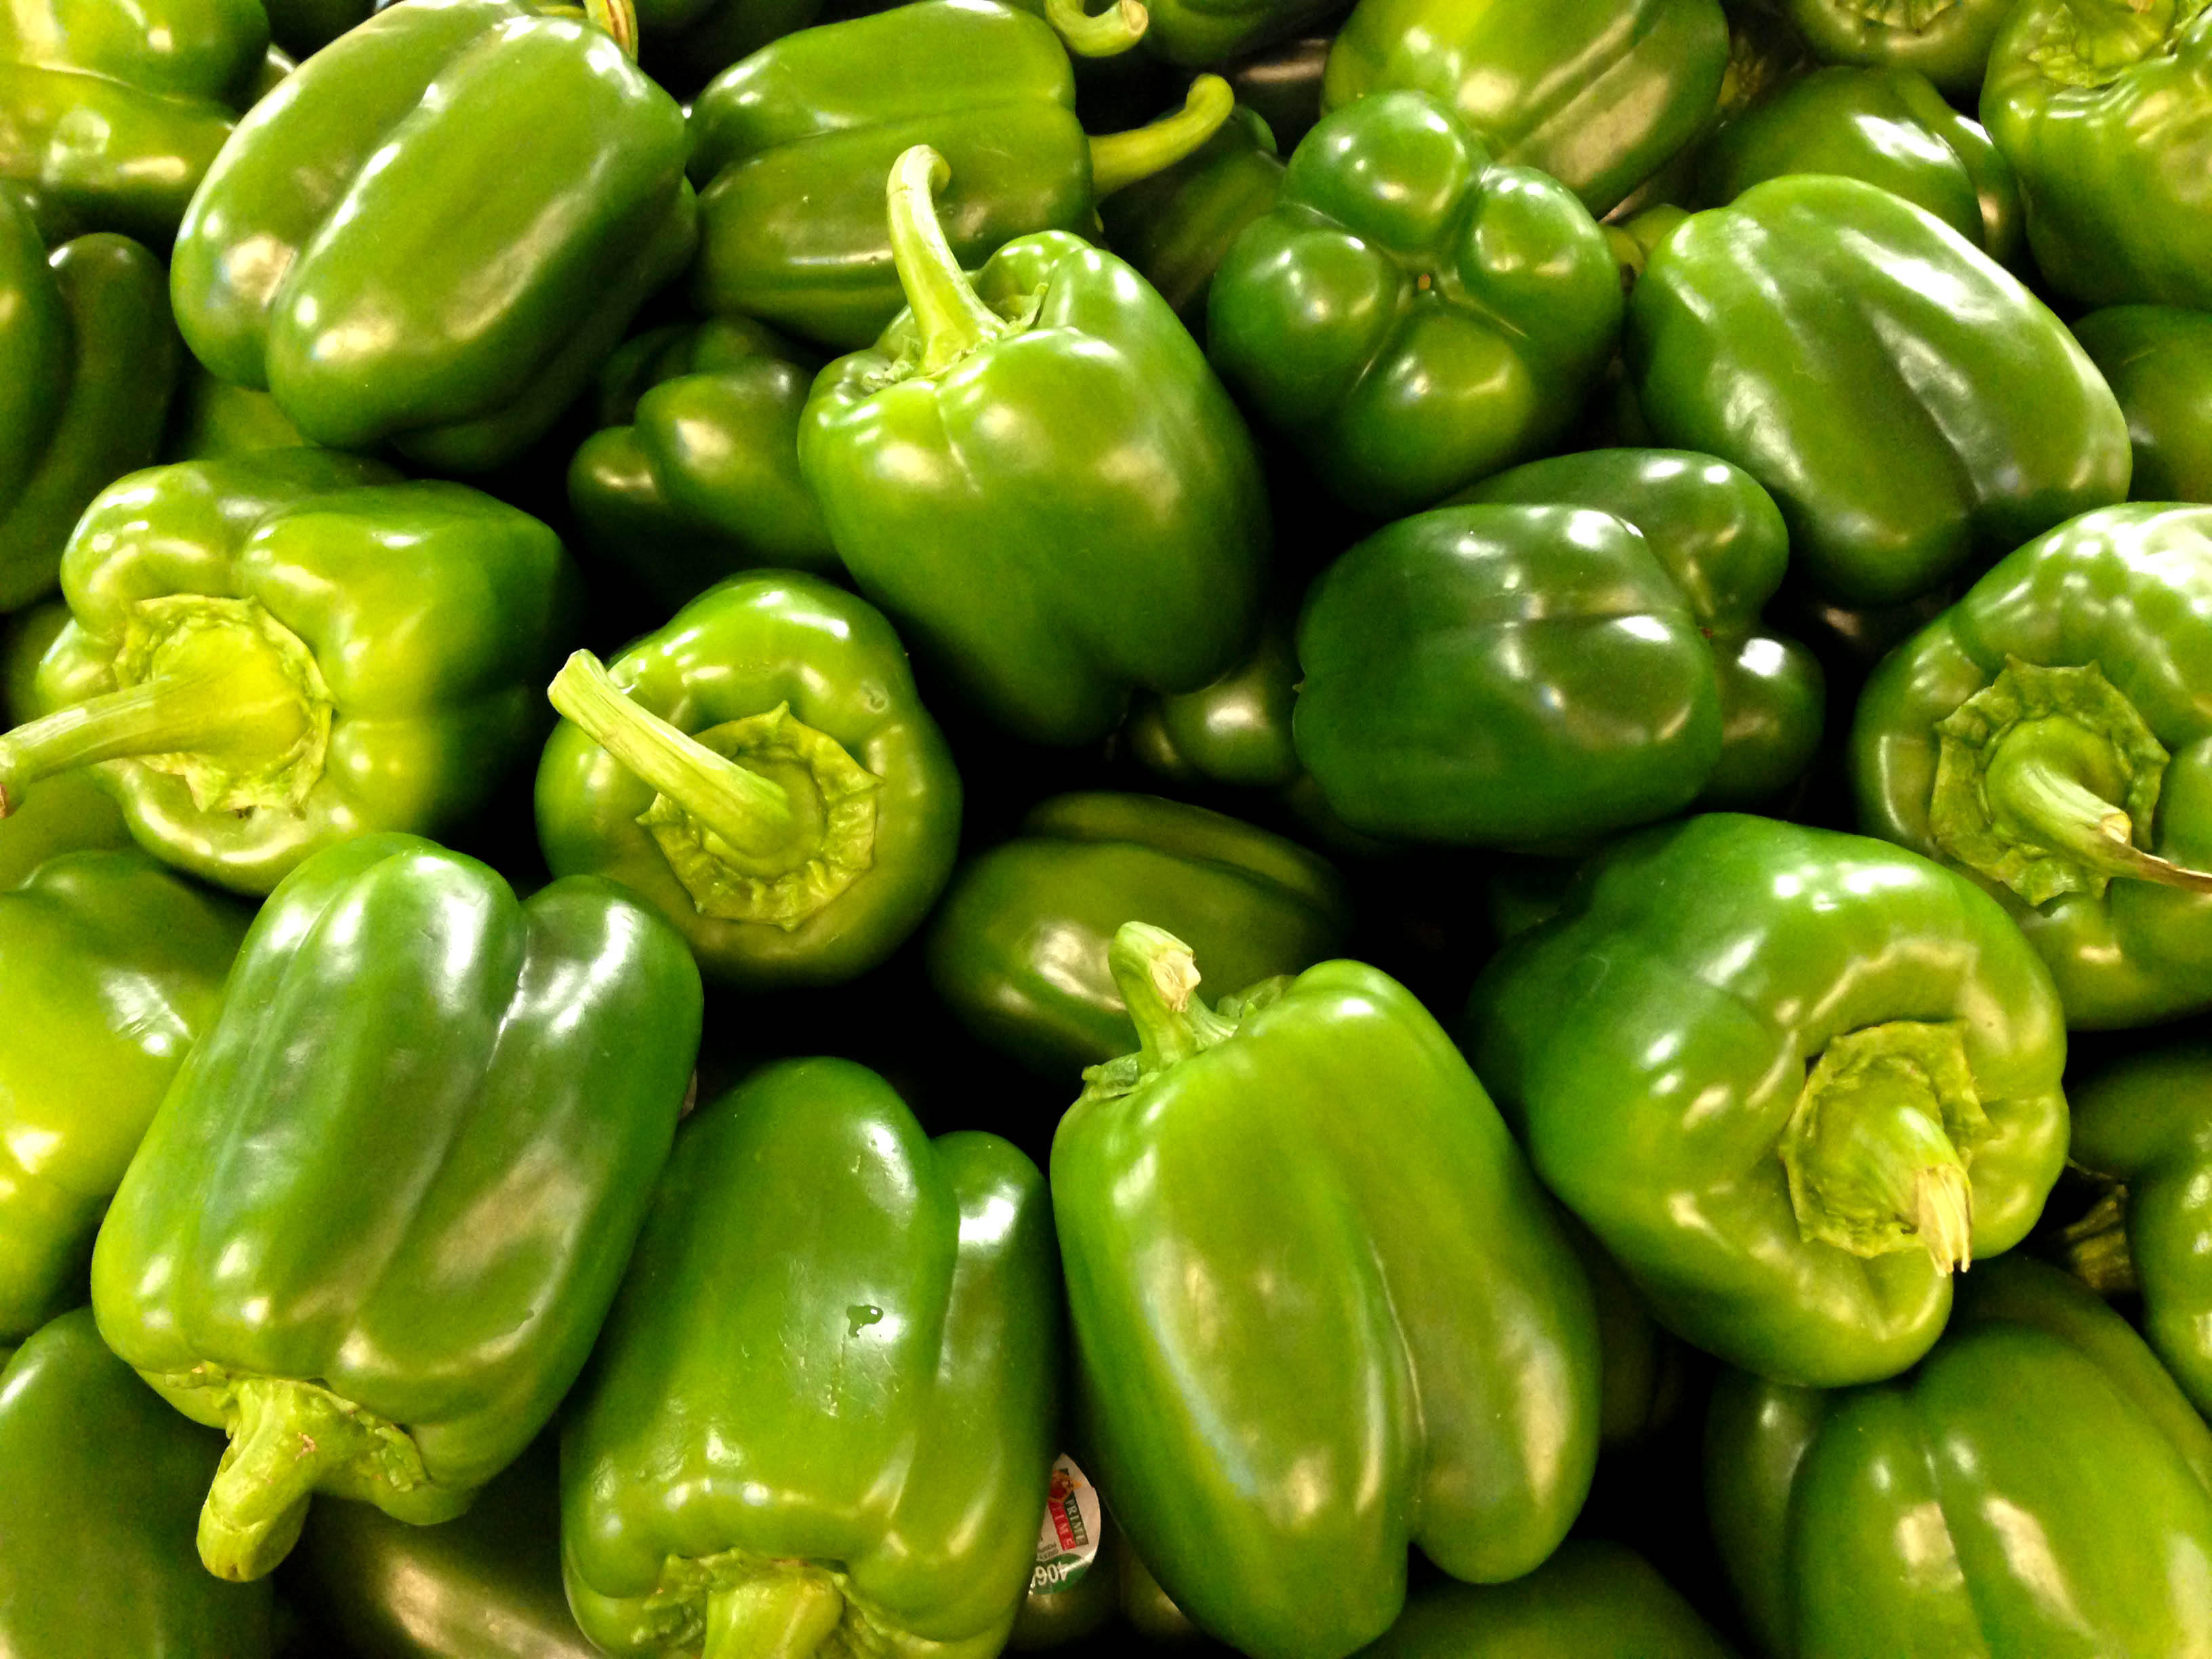 Bell peppers, Plant, Lifestyle, Meal, Natural, HQ Photo